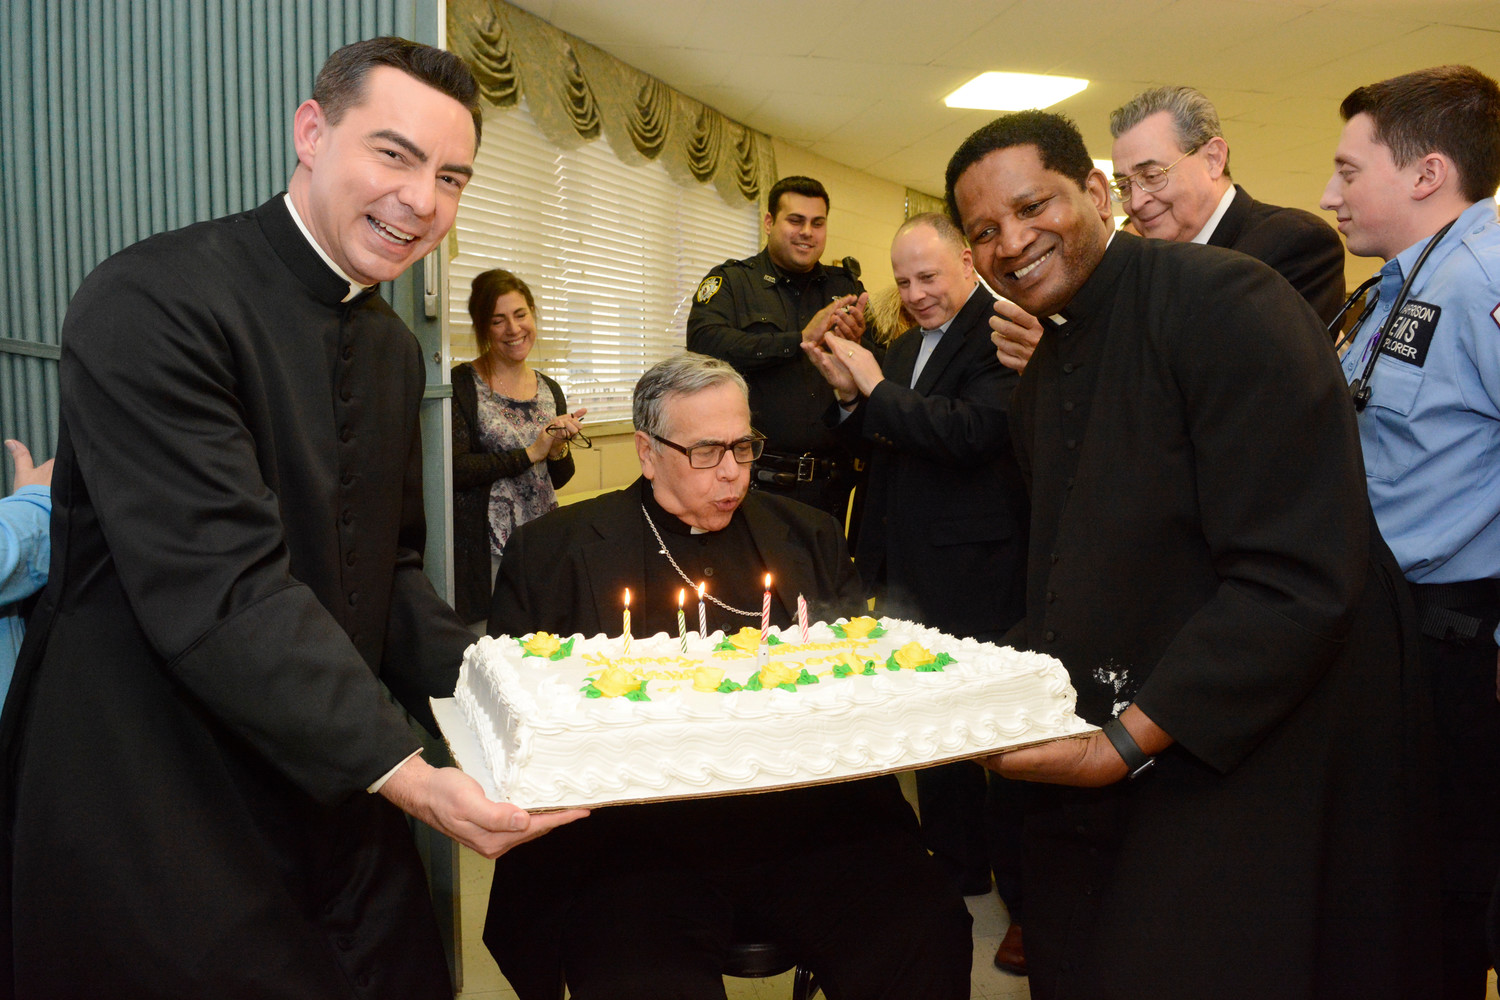 Bishop Lagonegro blows out the candles on his birthday cake at the party in the parish hall after the liturgy. Holding the cake at his left is Father Monturo and, at right, is Father George Kanshamba, a parochial vicar at St. Anthony's. Behind Father Kanshamba is Richard Morgado, a cousin of Bishop Lagonegro who was a lector at the Mass.